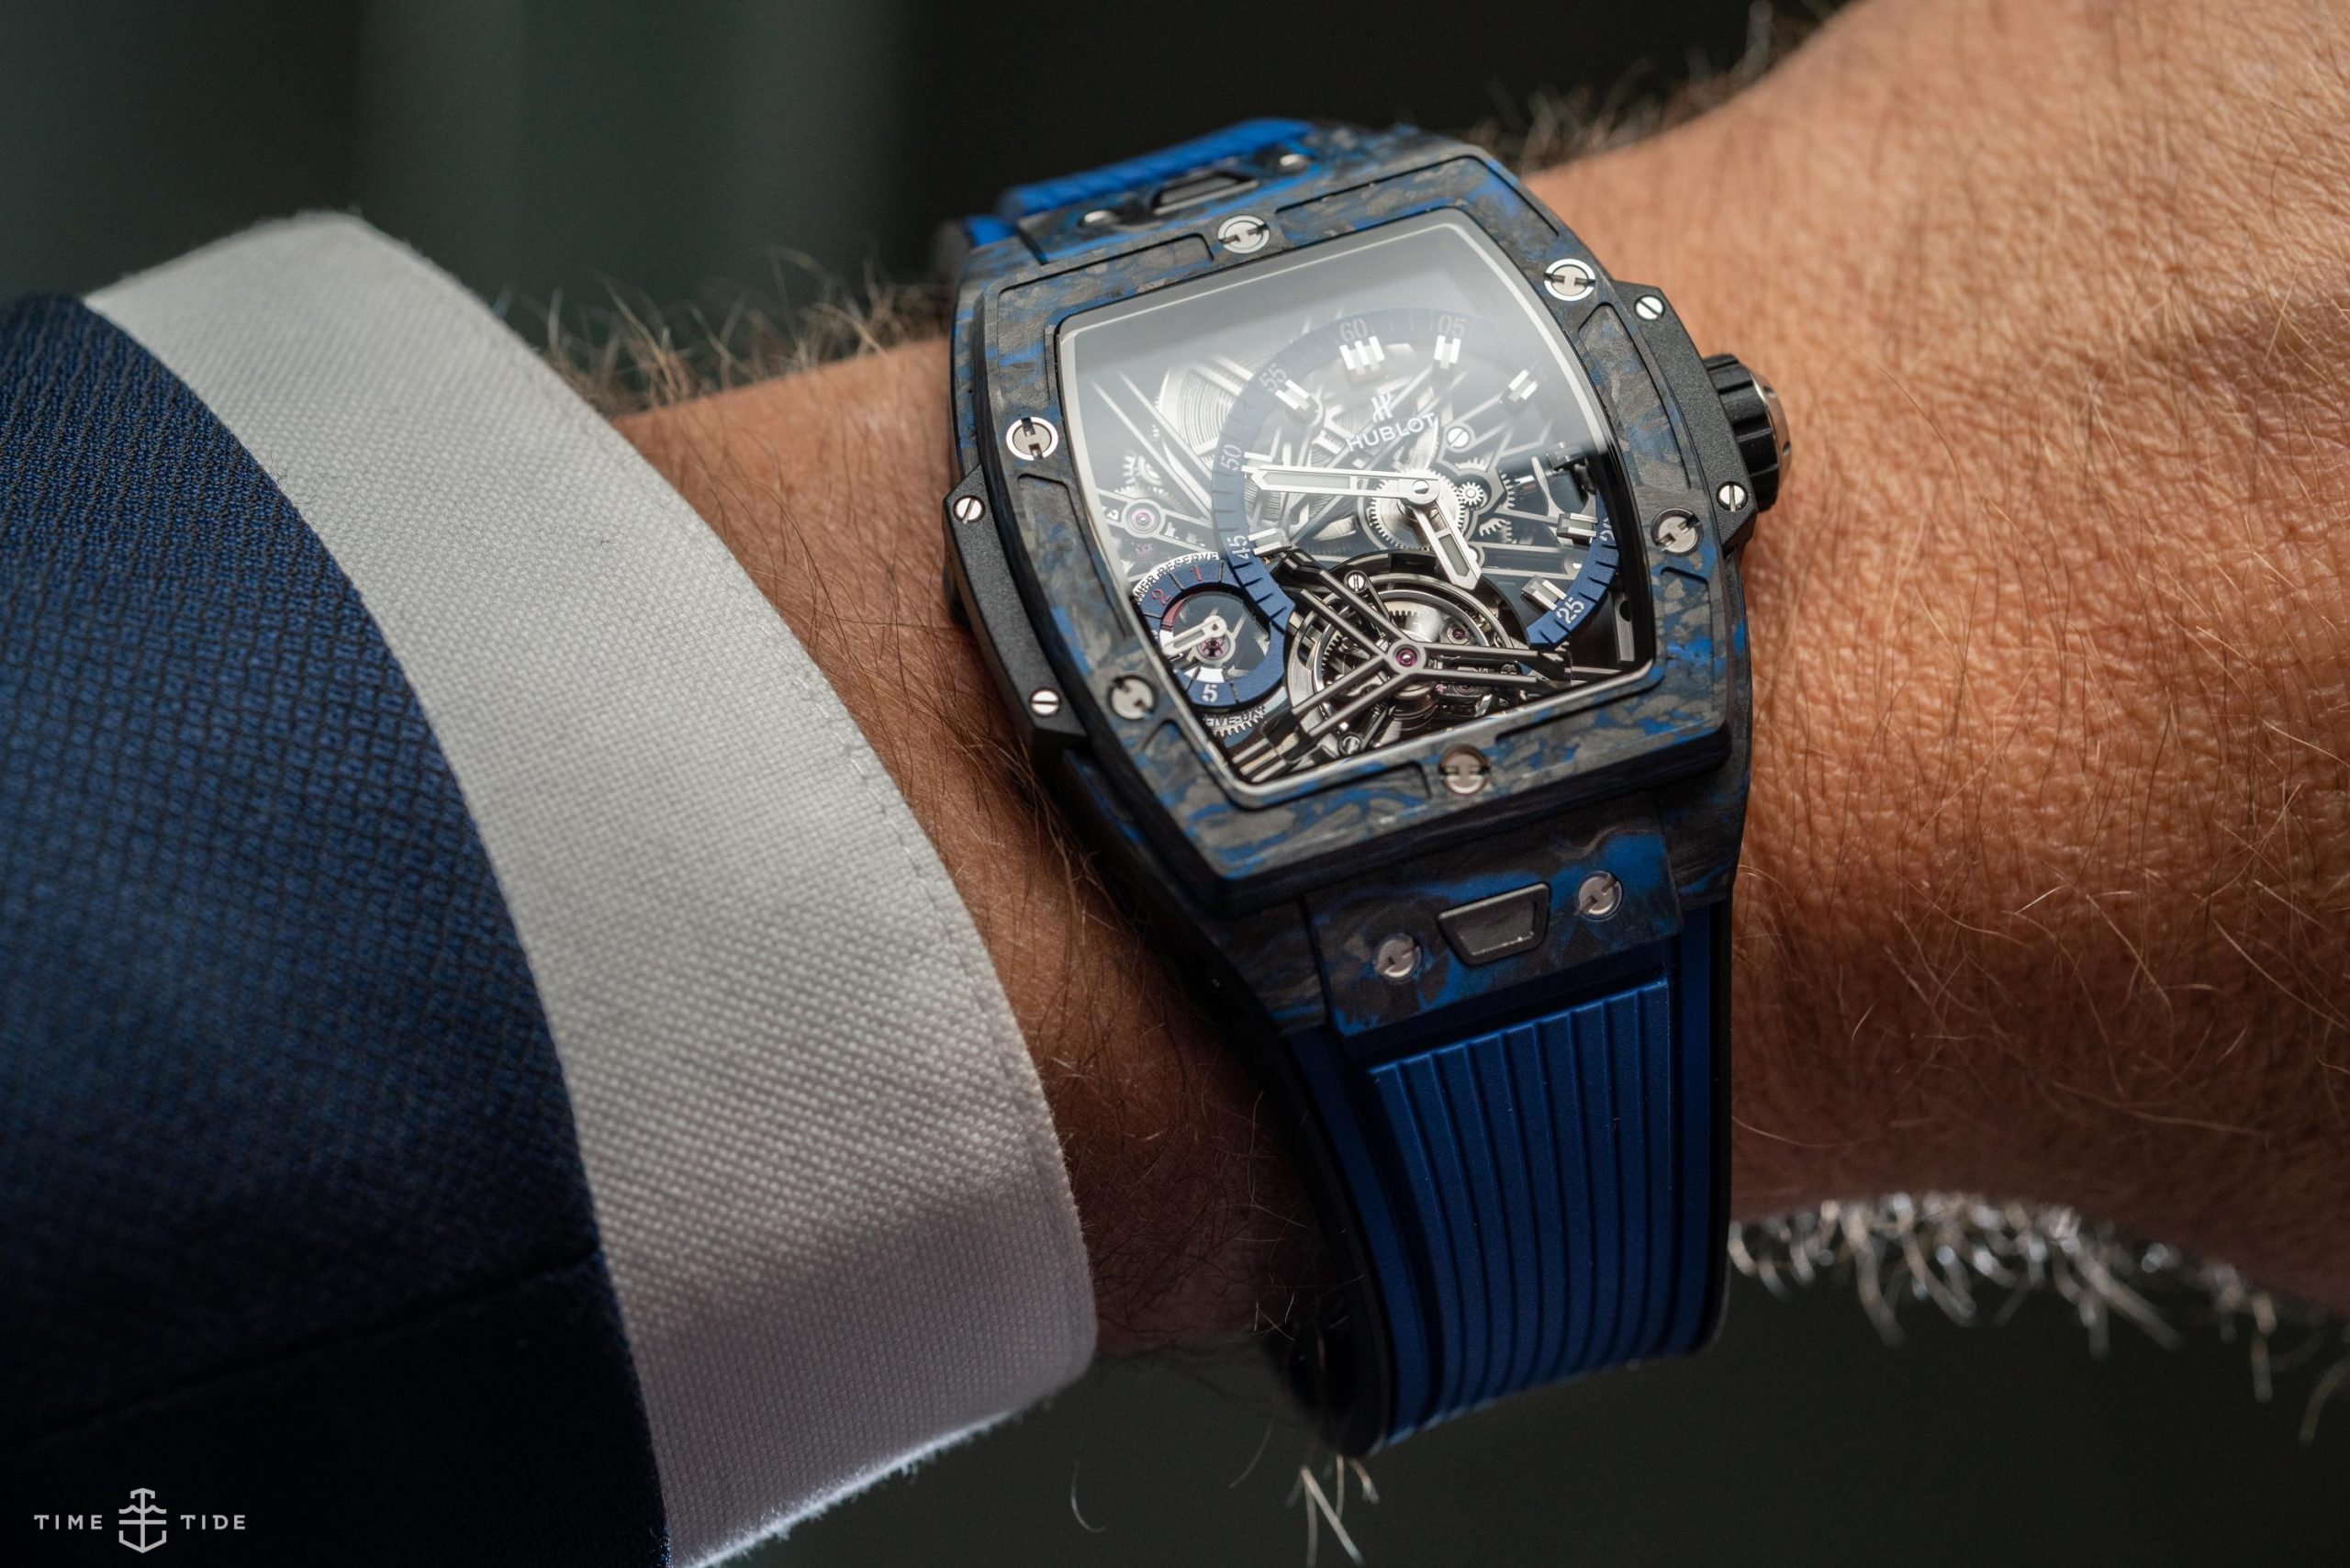 VIDEO: A five-minute crash course on how a tourbillon works and what it's comprised of